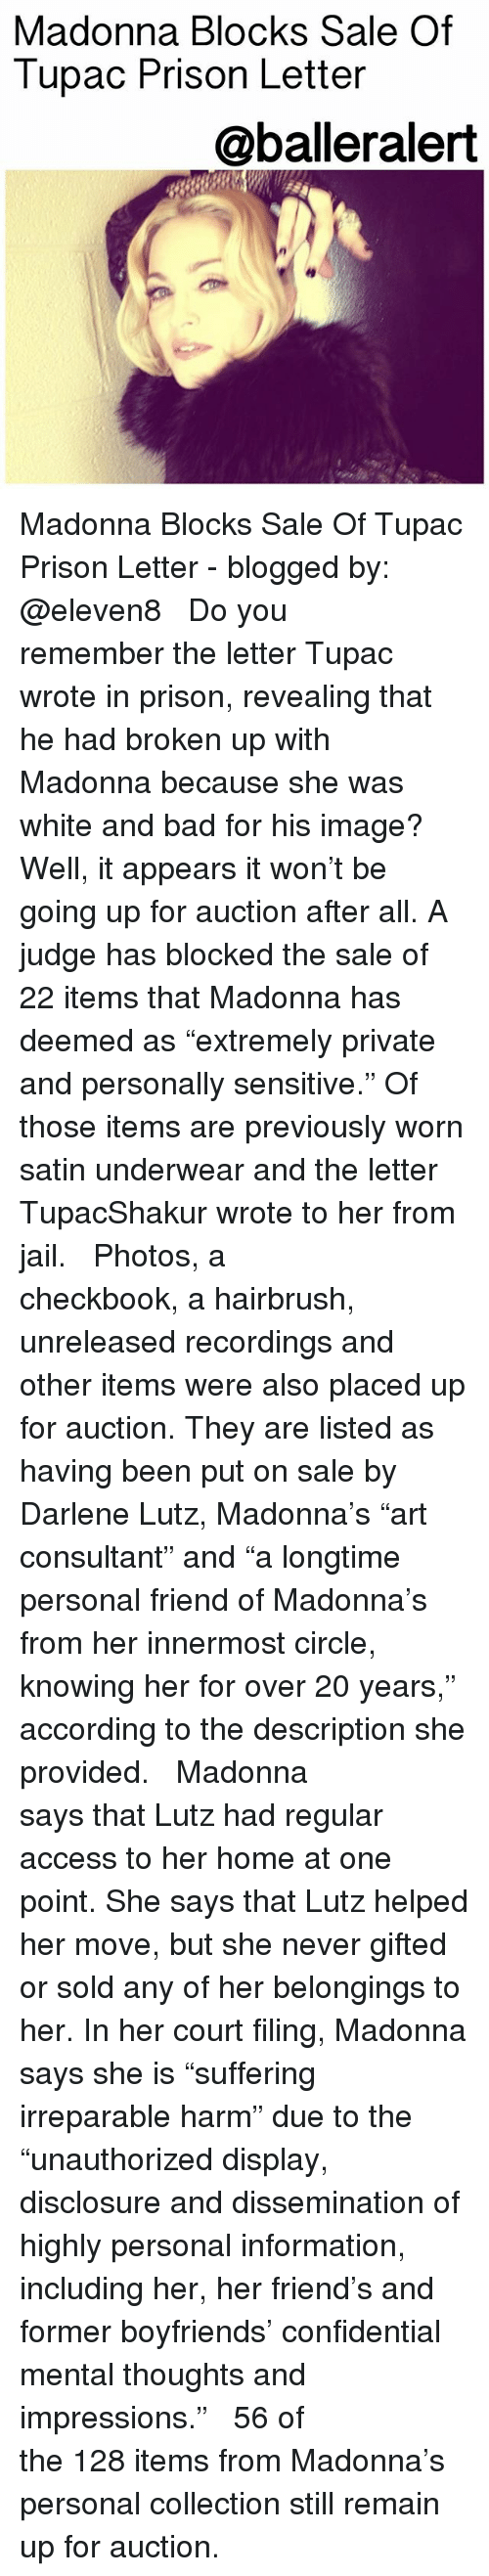 "disclosure: Madonna Blocks Sale Of  Tupac Prison Letter  @balleralert  1 Madonna Blocks Sale Of Tupac Prison Letter - blogged by: @eleven8 ⠀⠀⠀⠀⠀⠀⠀⠀⠀ ⠀⠀⠀⠀⠀⠀⠀⠀⠀ Do you remember the letter Tupac wrote in prison, revealing that he had broken up with Madonna because she was white and bad for his image? Well, it appears it won't be going up for auction after all. A judge has blocked the sale of 22 items that Madonna has deemed as ""extremely private and personally sensitive."" Of those items are previously worn satin underwear and the letter TupacShakur wrote to her from jail. ⠀⠀⠀⠀⠀⠀⠀⠀⠀ ⠀⠀⠀⠀⠀⠀⠀⠀⠀ Photos, a checkbook, a hairbrush, unreleased recordings and other items were also placed up for auction. They are listed as having been put on sale by Darlene Lutz, Madonna's ""art consultant"" and ""a longtime personal friend of Madonna's from her innermost circle, knowing her for over 20 years,"" according to the description she provided. ⠀⠀⠀⠀⠀⠀⠀⠀⠀ ⠀⠀⠀⠀⠀⠀⠀⠀⠀ Madonna says that Lutz had regular access to her home at one point. She says that Lutz helped her move, but she never gifted or sold any of her belongings to her. In her court filing, Madonna says she is ""suffering irreparable harm"" due to the ""unauthorized display, disclosure and dissemination of highly personal information, including her, her friend's and former boyfriends' confidential mental thoughts and impressions."" ⠀⠀⠀⠀⠀⠀⠀⠀⠀ ⠀⠀⠀⠀⠀⠀⠀⠀⠀ 56 of the 128 items from Madonna's personal collection still remain up for auction."